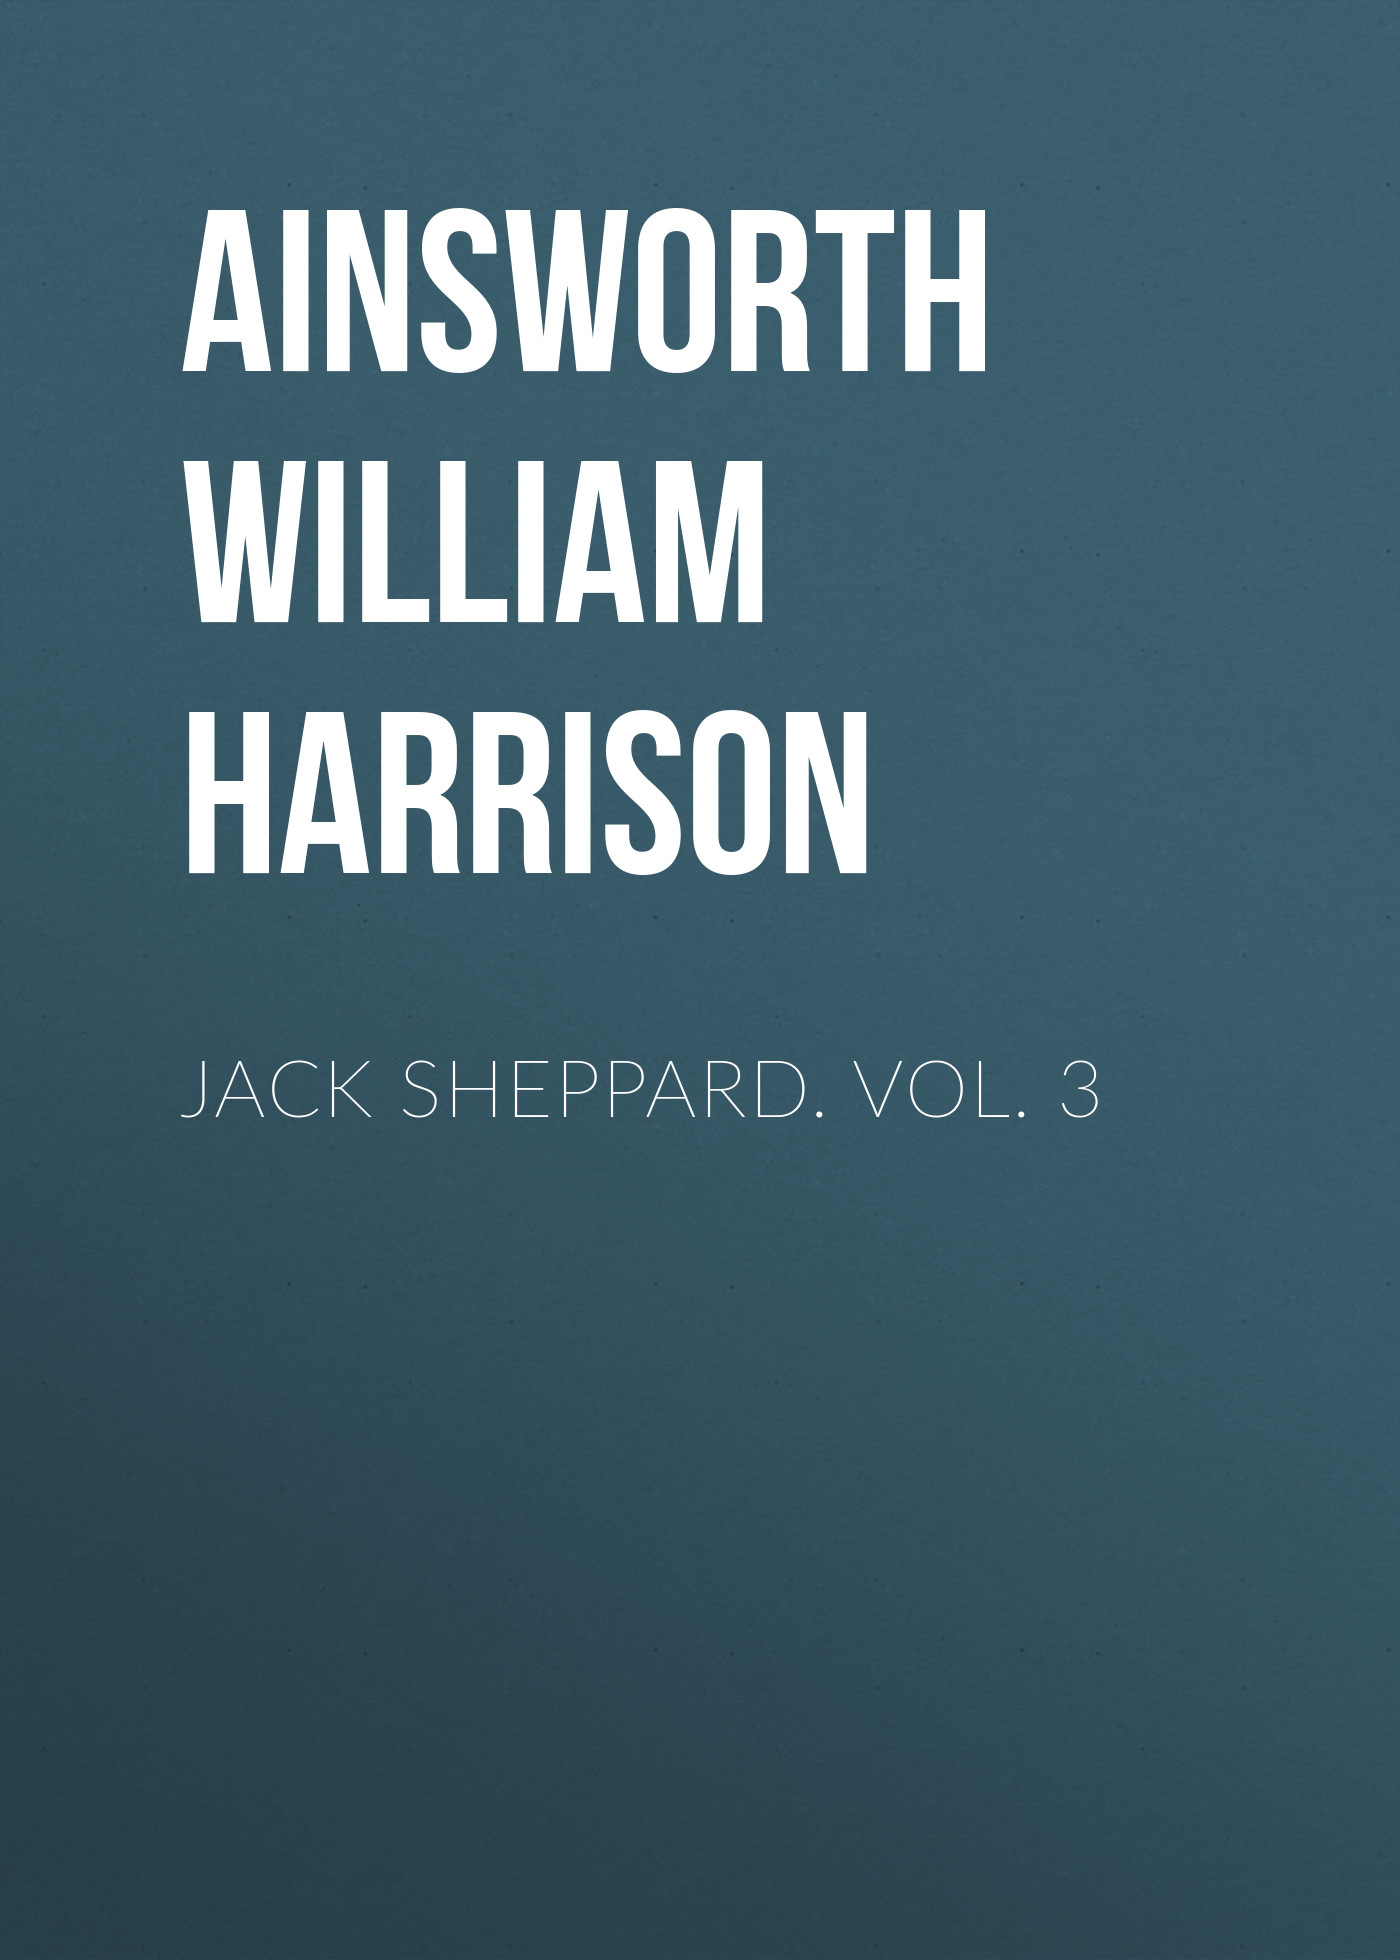 Ainsworth William Harrison Jack Sheppard. Vol. 3 ainsworth william harrison the star chamber an historical romance volume 1